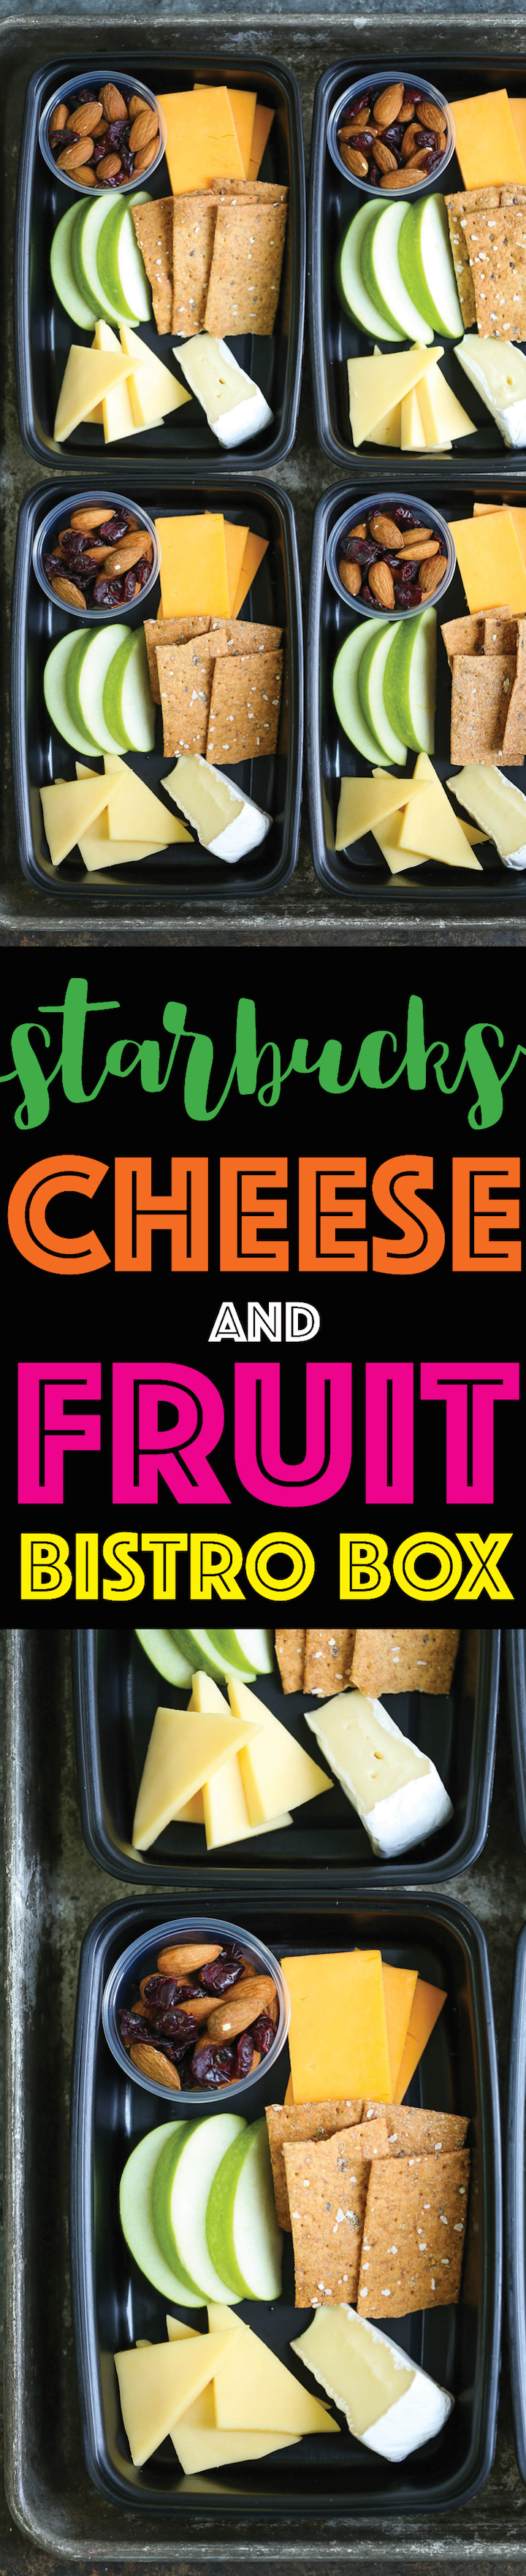 Copycat Starbucks Cheese and Fruit Bistro Box - Prep for the week ahead! Perfect to refuel and snack with cheese, crackers, apples, cranberries and almonds!